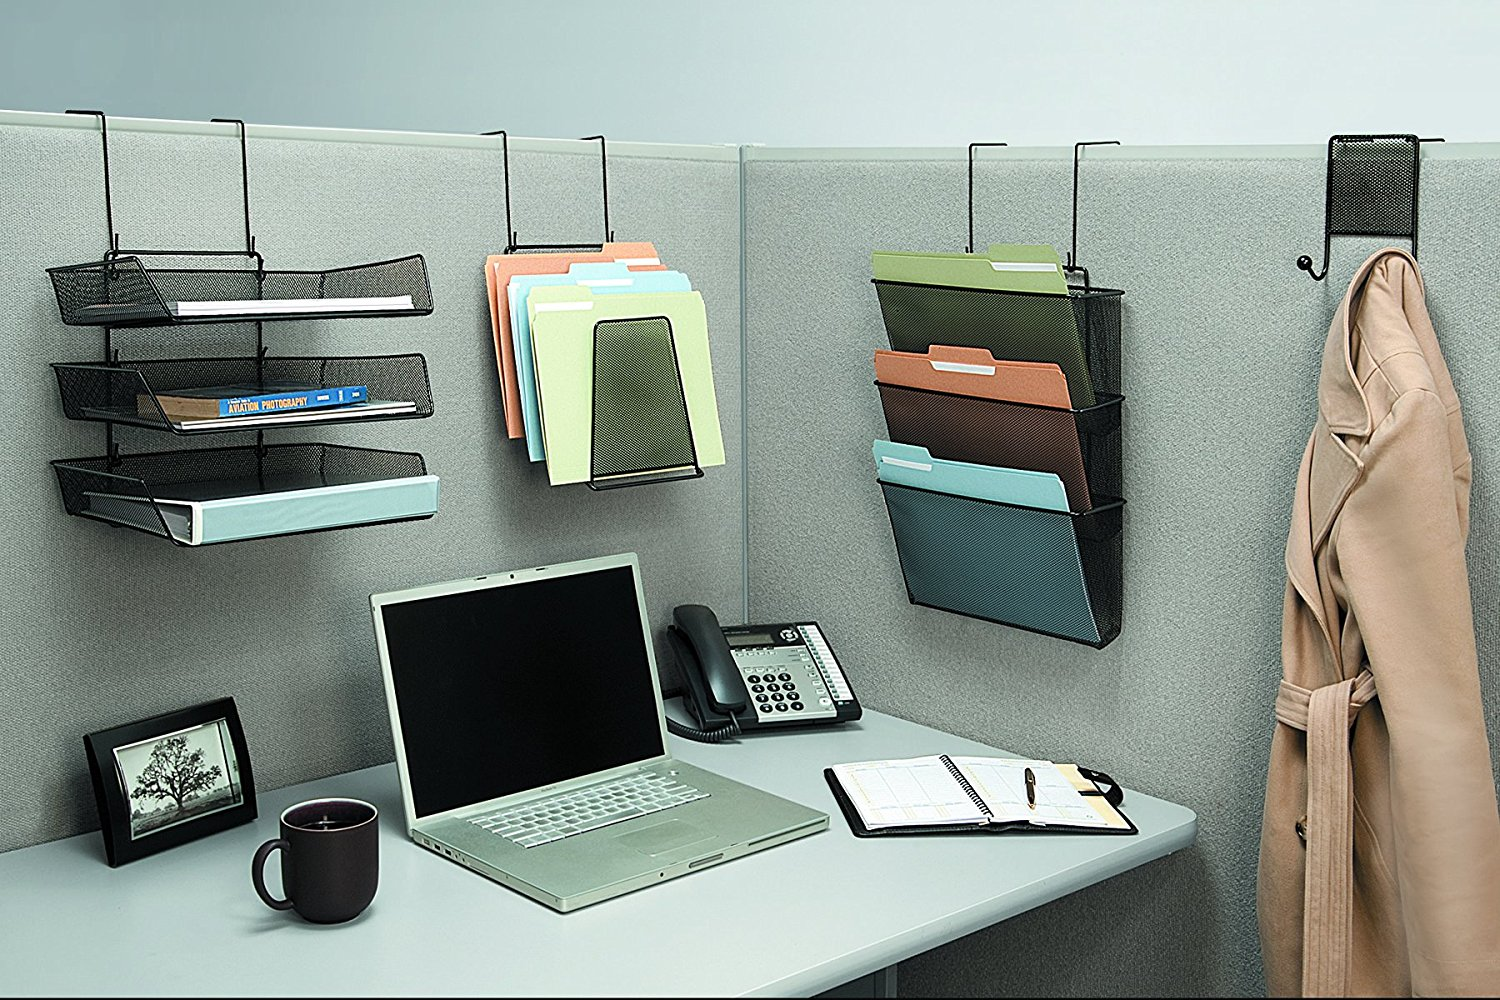 Cubicle Coat Hook | Hangers for Cubicle Walls | Cubicle Plant Hanger